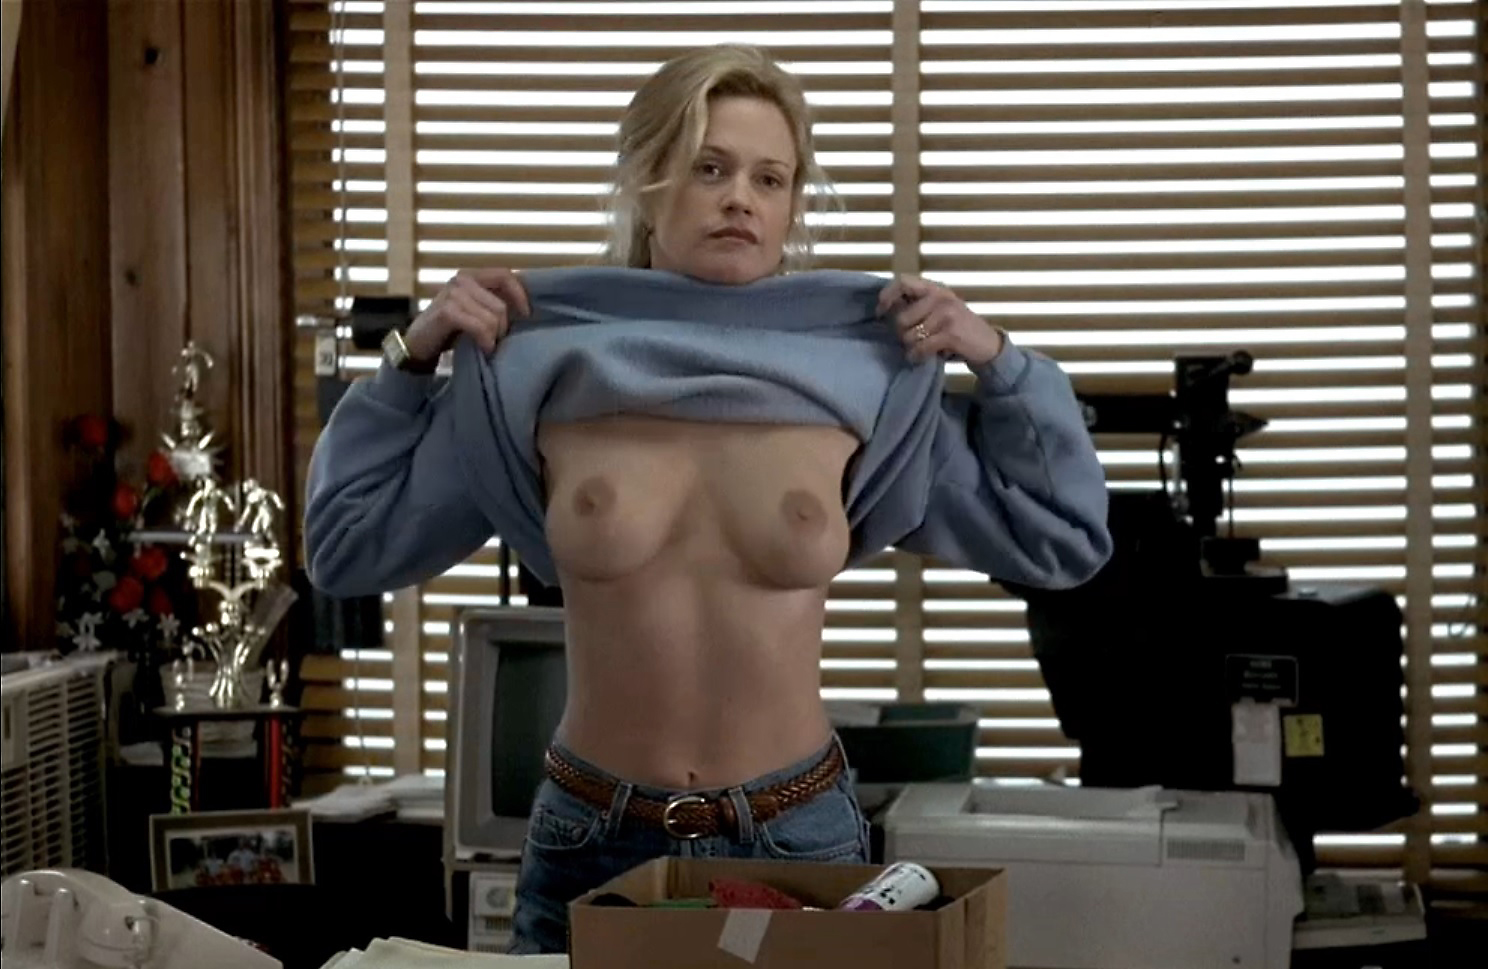 Melanie griffith nude boobs something wild movie nudes (24 pic)